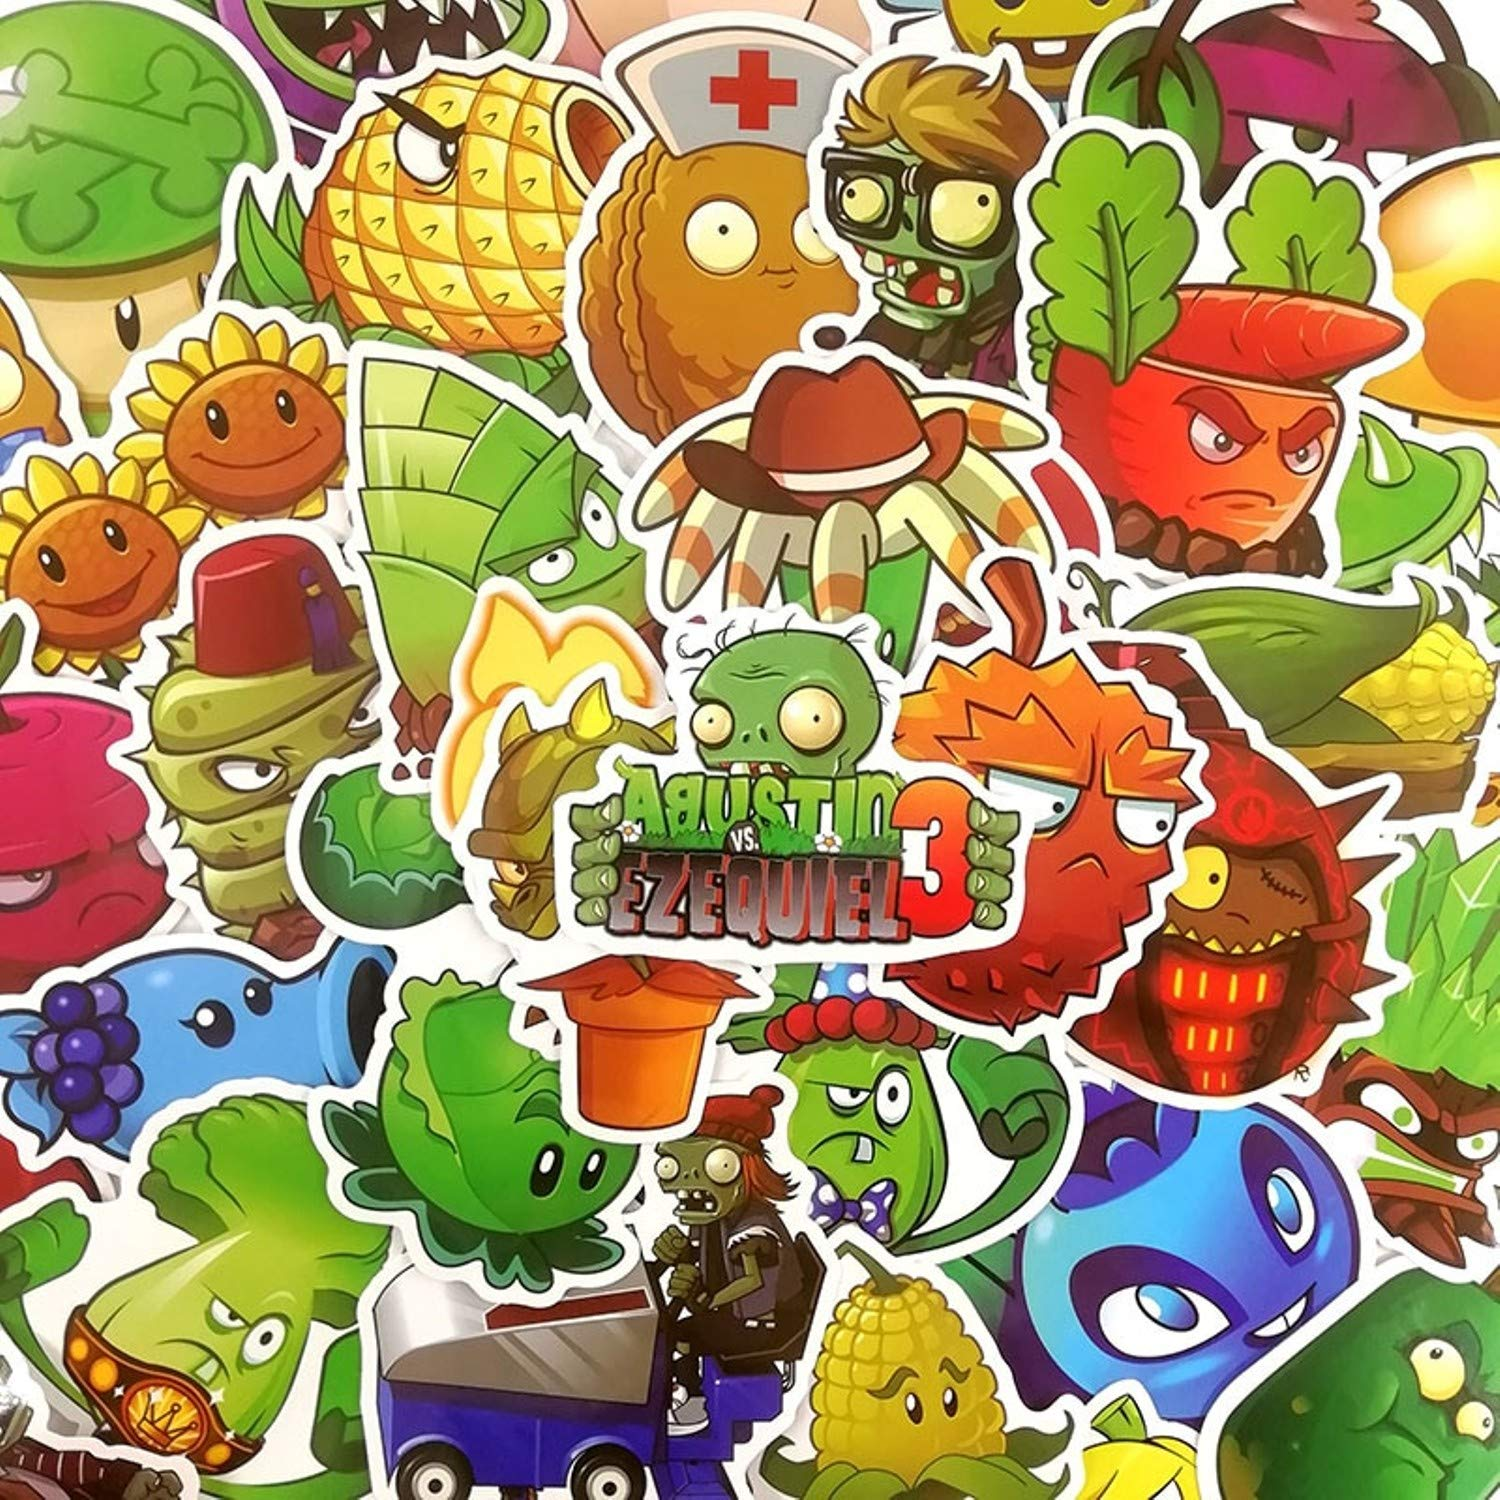 Plants Vs Zombies Graffiti Stickers 50 Pcs//Set Cute Cartoon Stickers for Laptops Bikes Bedroom Luggage Bicycle Mac-Book Cars Travel Case Bicycles Motorcycle Bumpers Snowboard, Skateboards